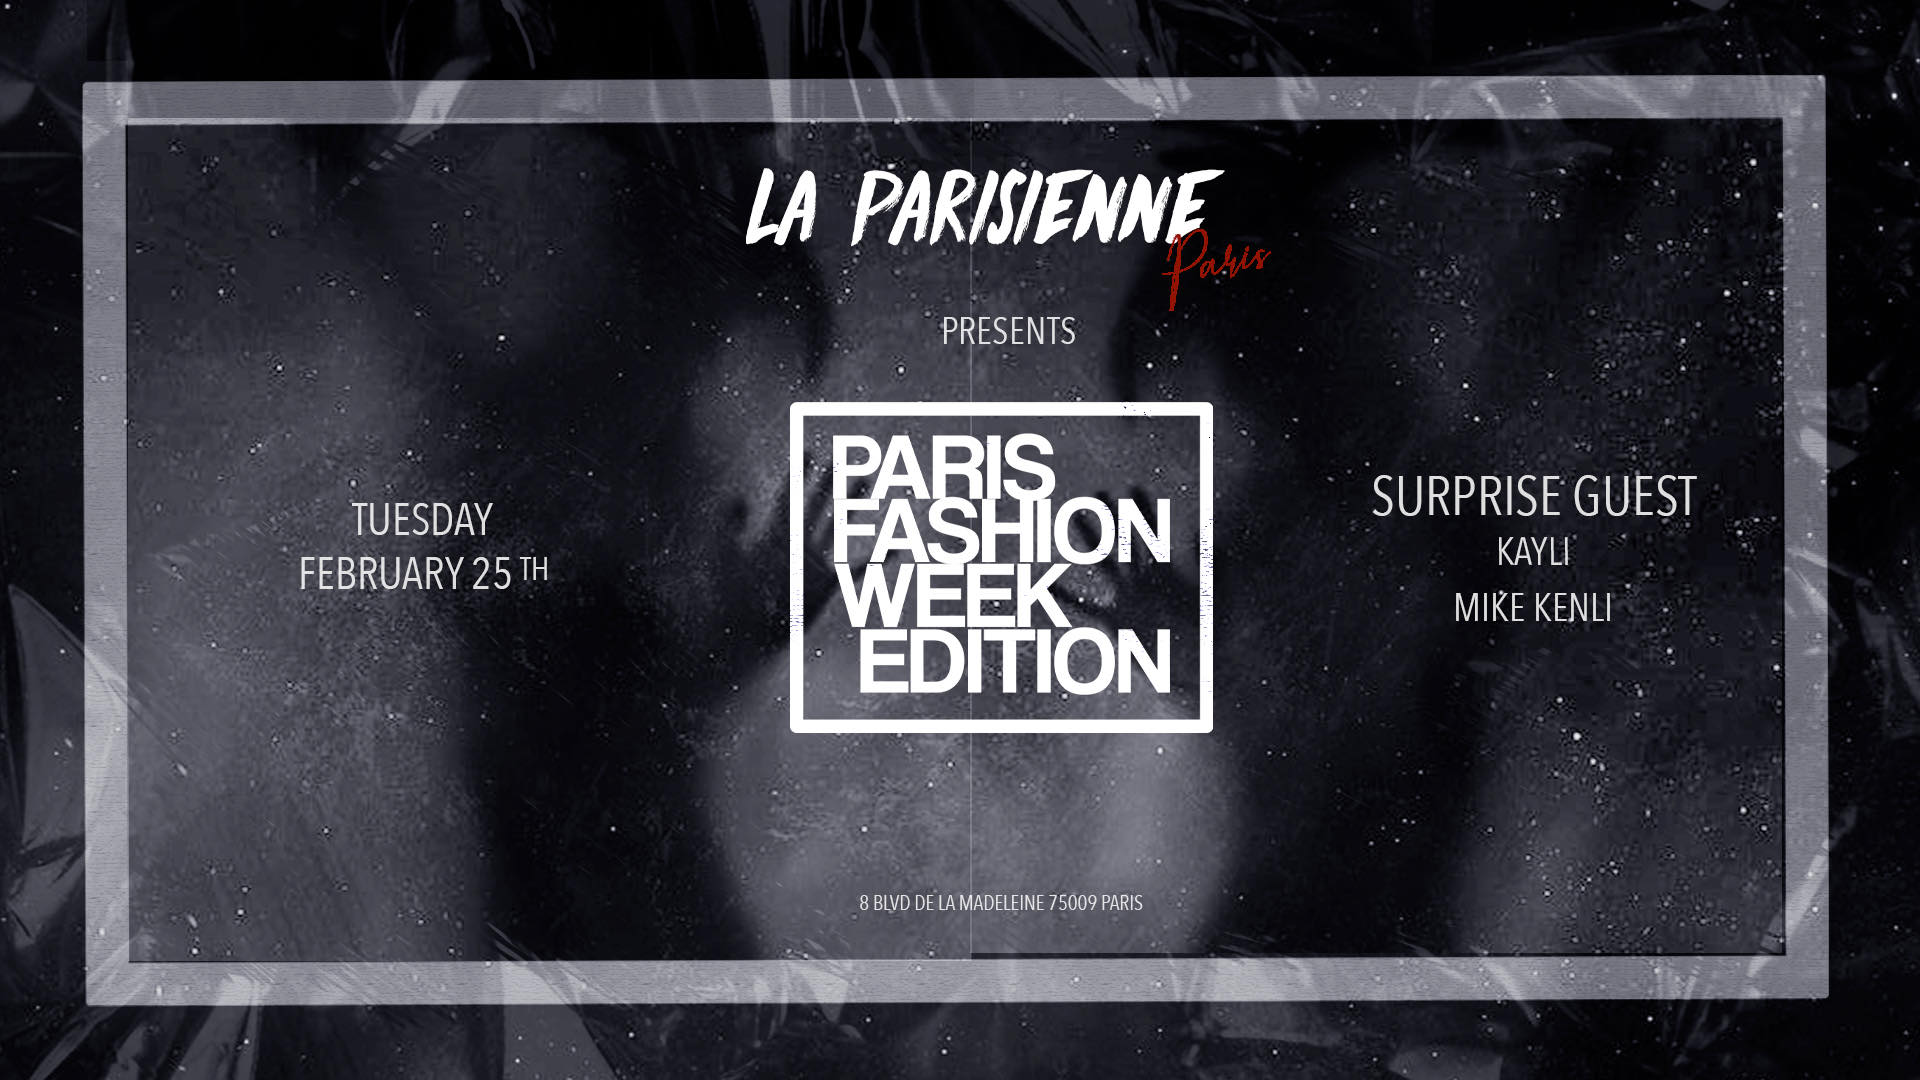 La Parisienne - Paris Fashion Week - Tue Feb. 25th